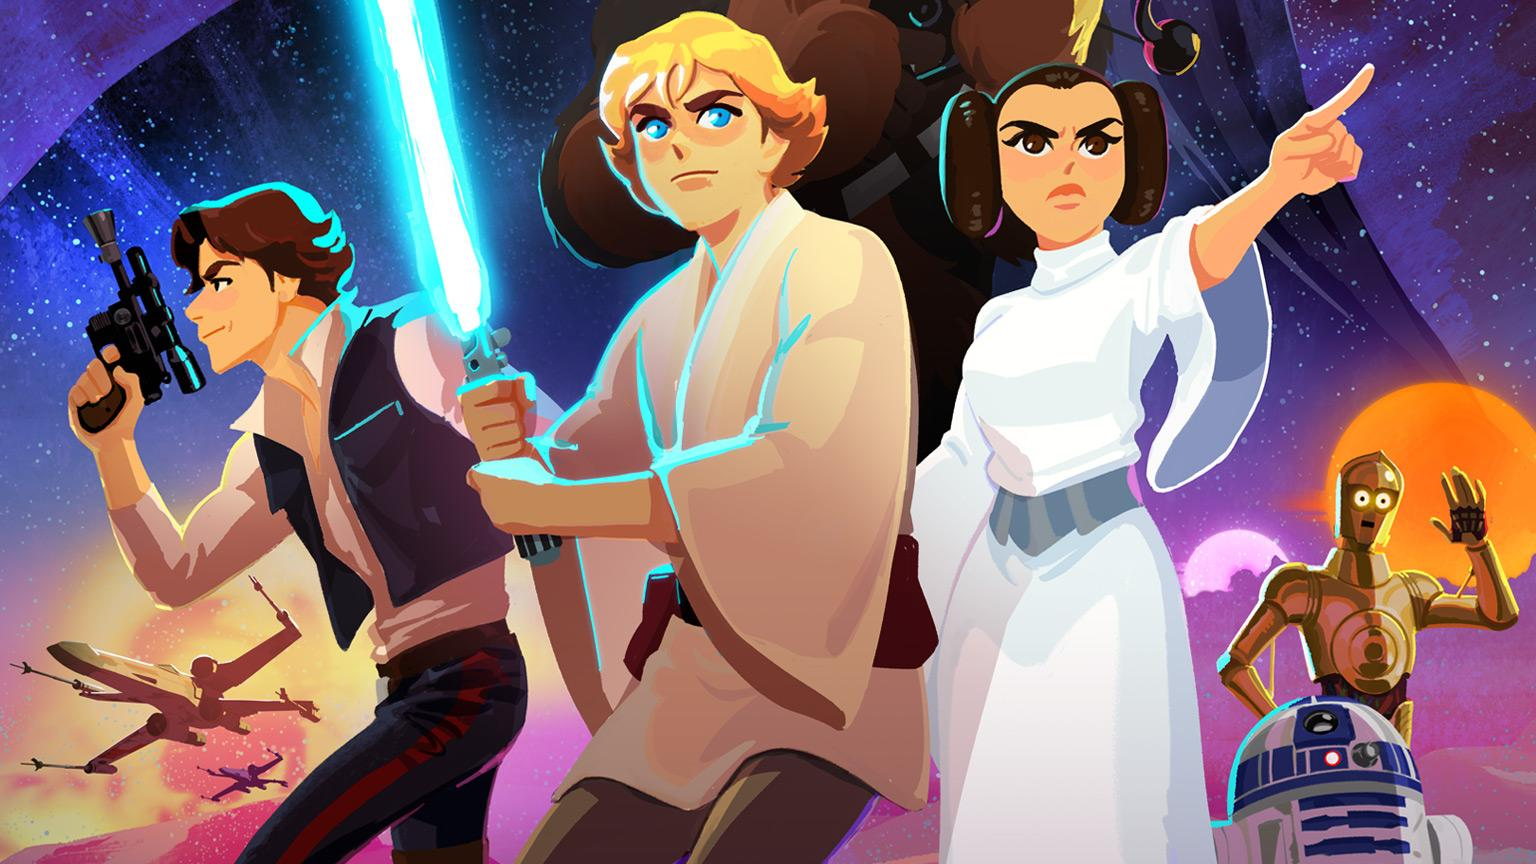 Star Wars Original Trilogy Will Be Turned Into Animated Shorts For Kids Slashgear